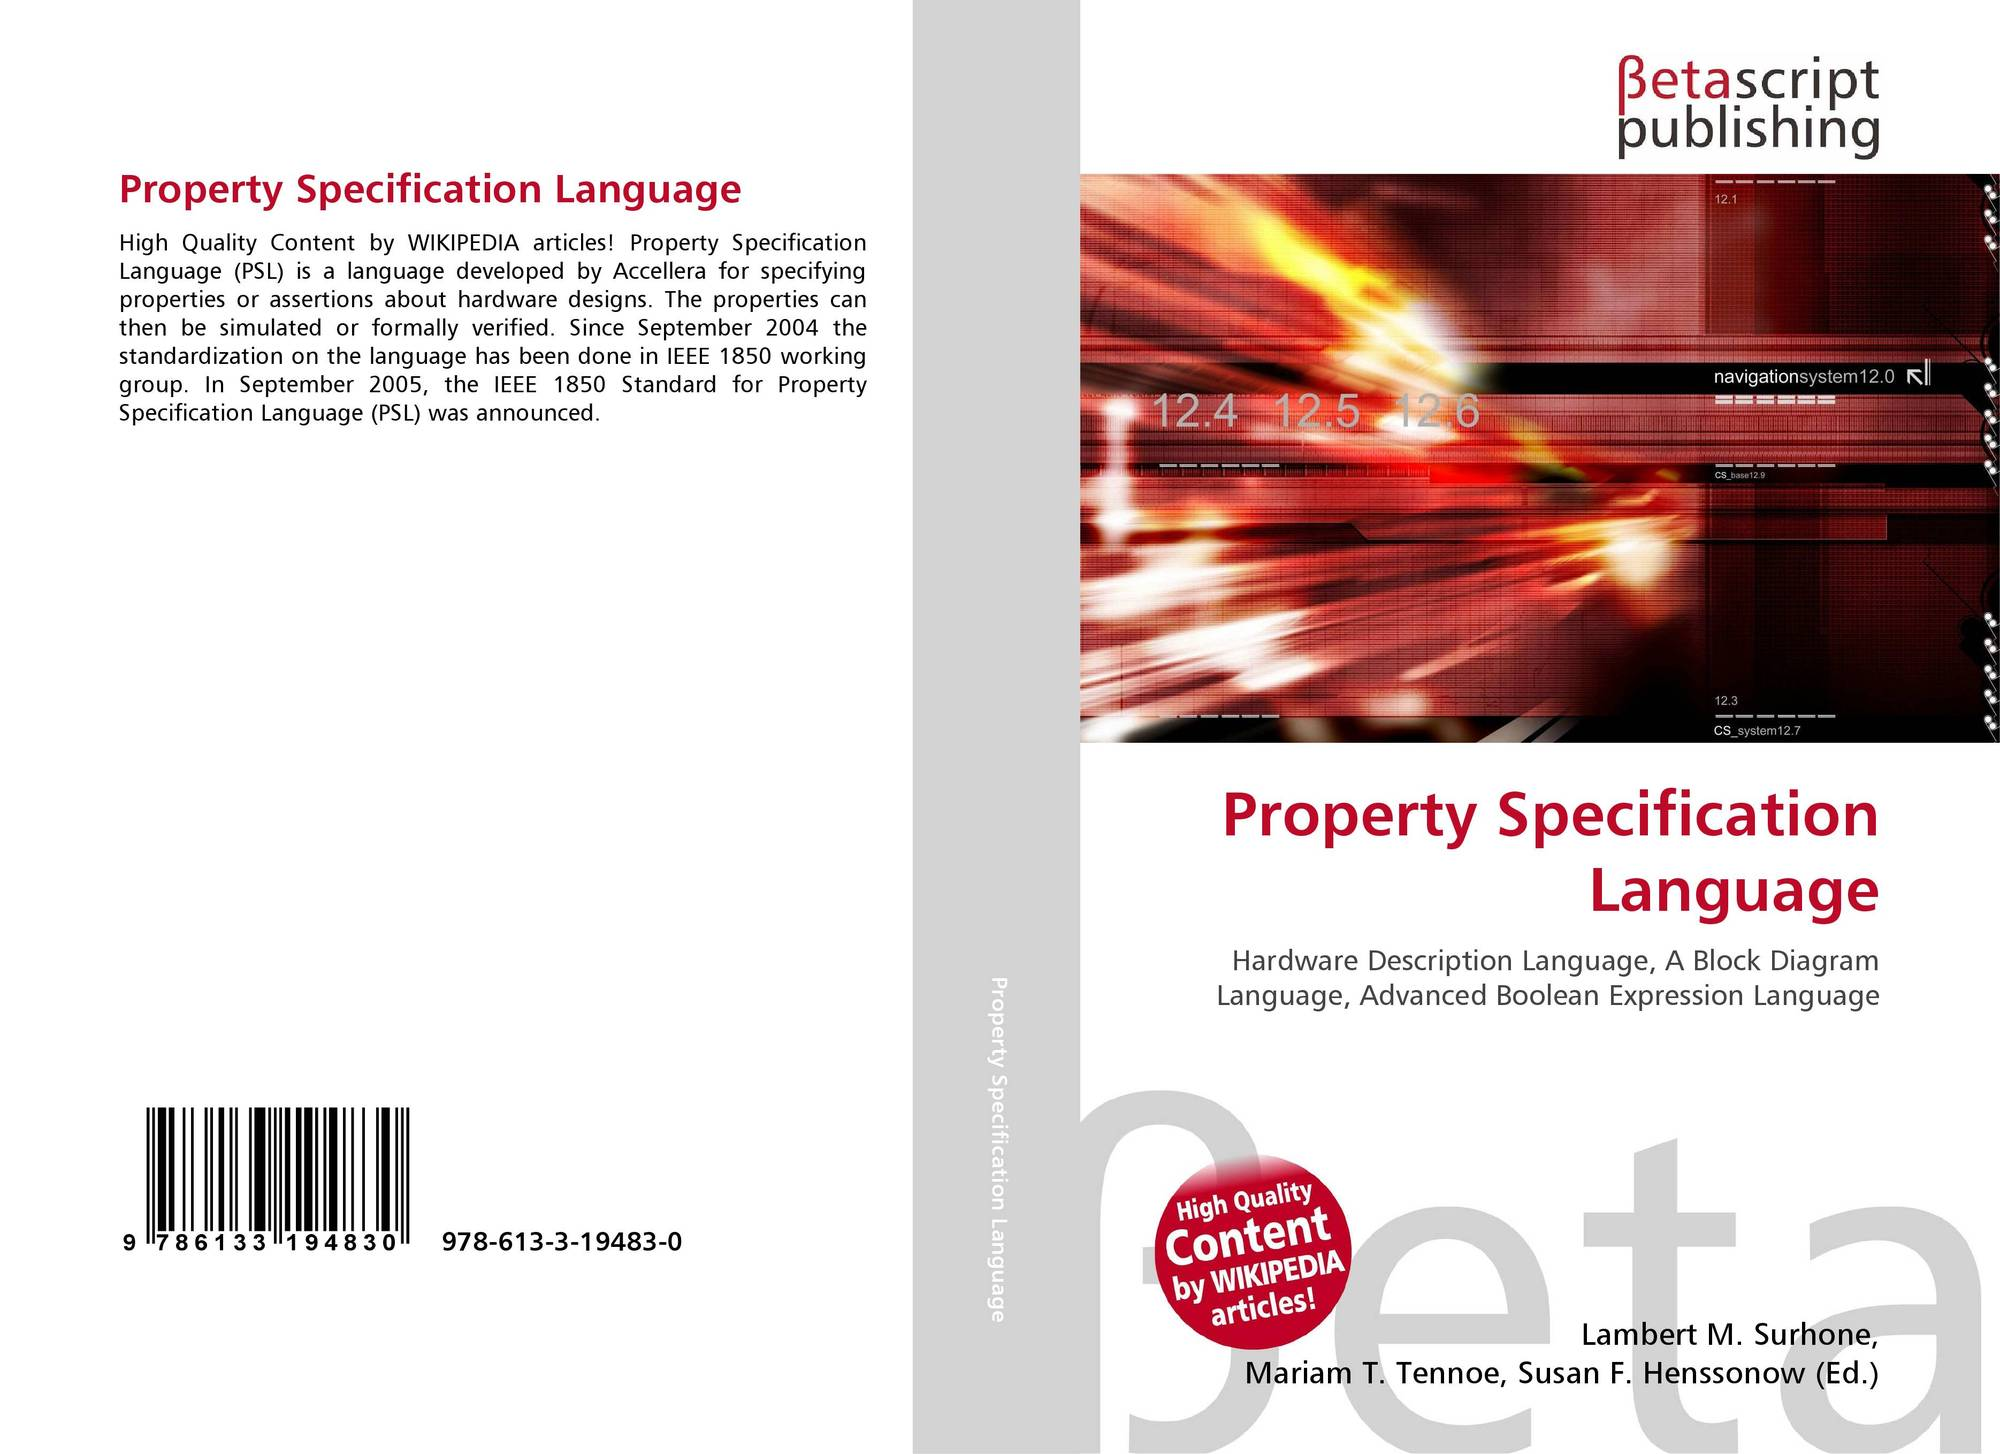 Search Results For A Language Process Specification Block Diagram Wikipedia Bookcover Of Property Omni Badge 9307e2201e5f762643a64561af3456be64a87707602f96b92ef18a9bbcada116